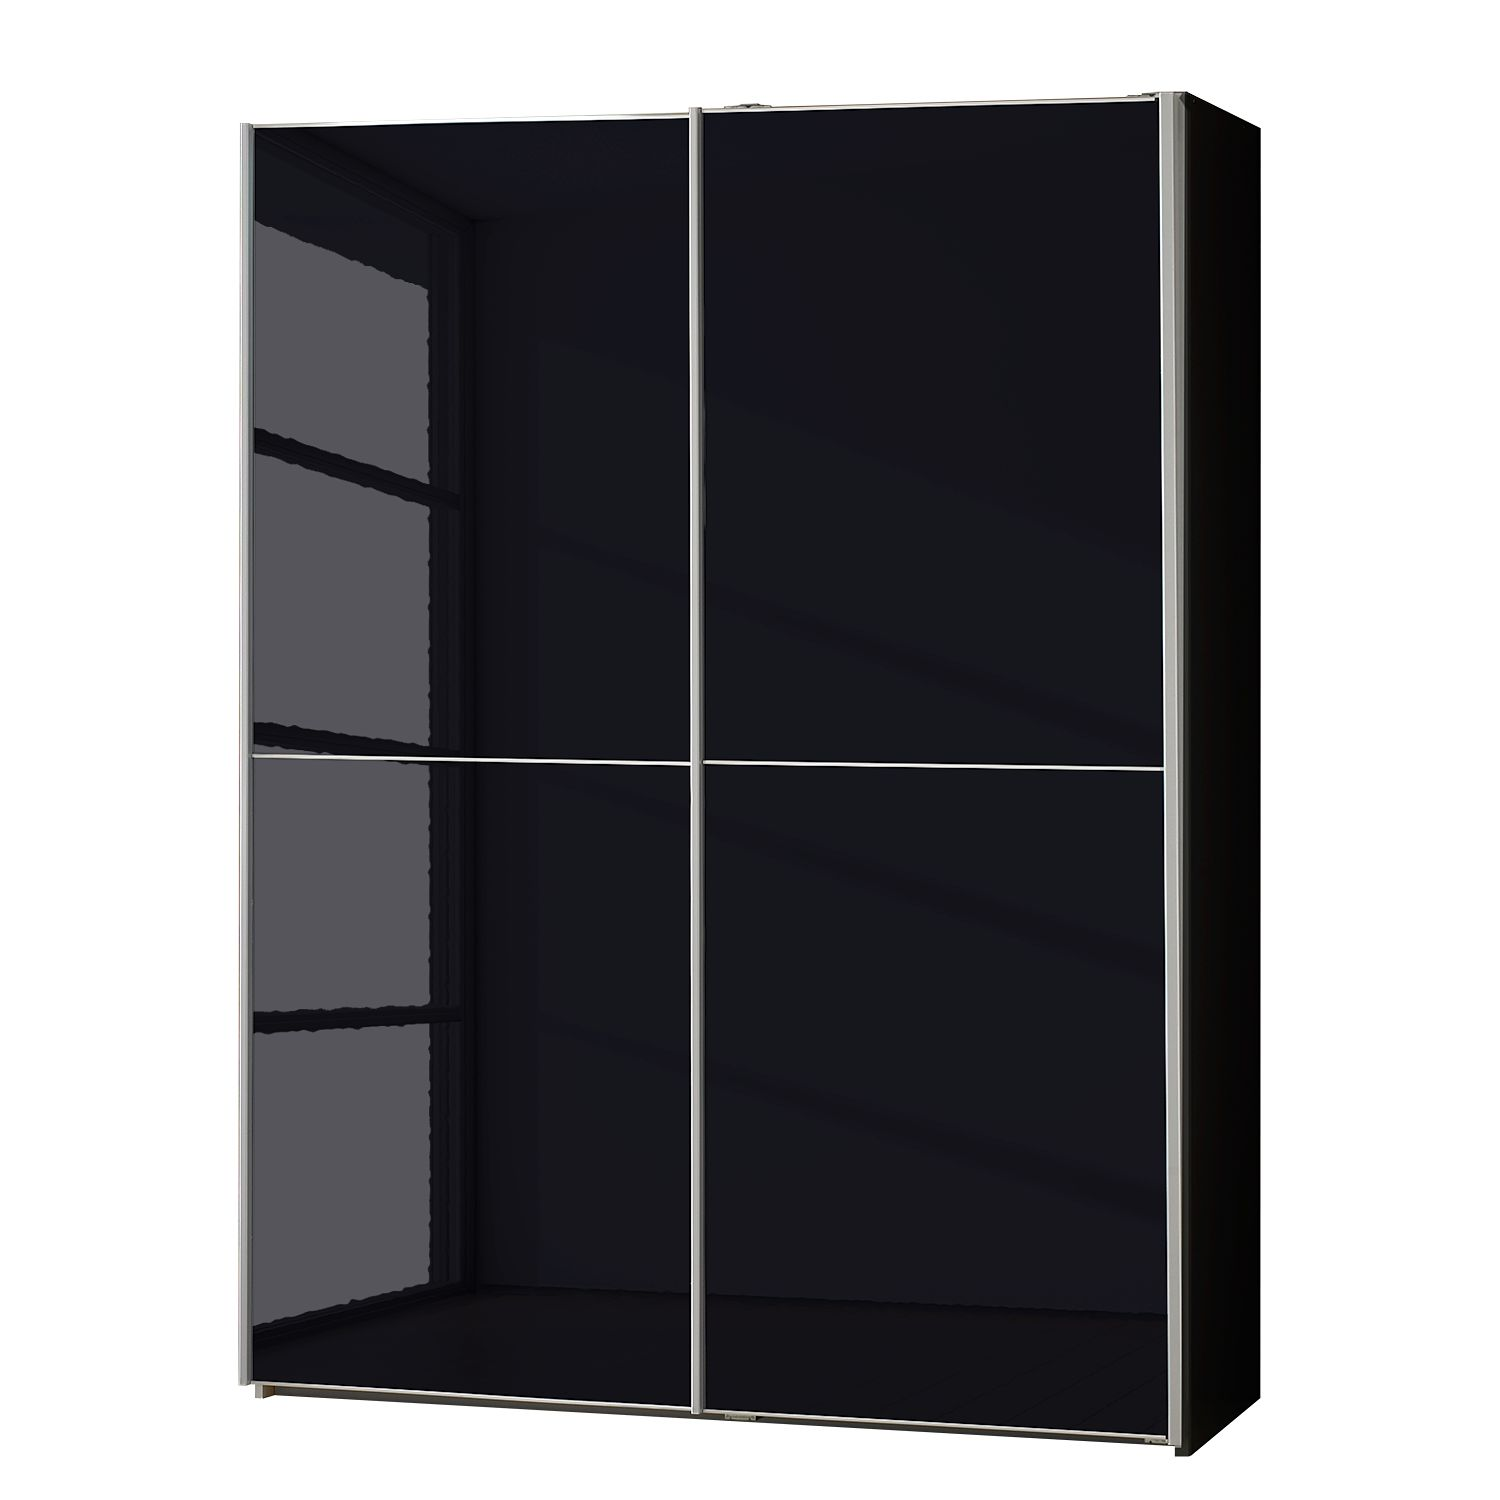 schwebet renschrank 150 cm preisvergleiche erfahrungsberichte und kauf bei nextag. Black Bedroom Furniture Sets. Home Design Ideas